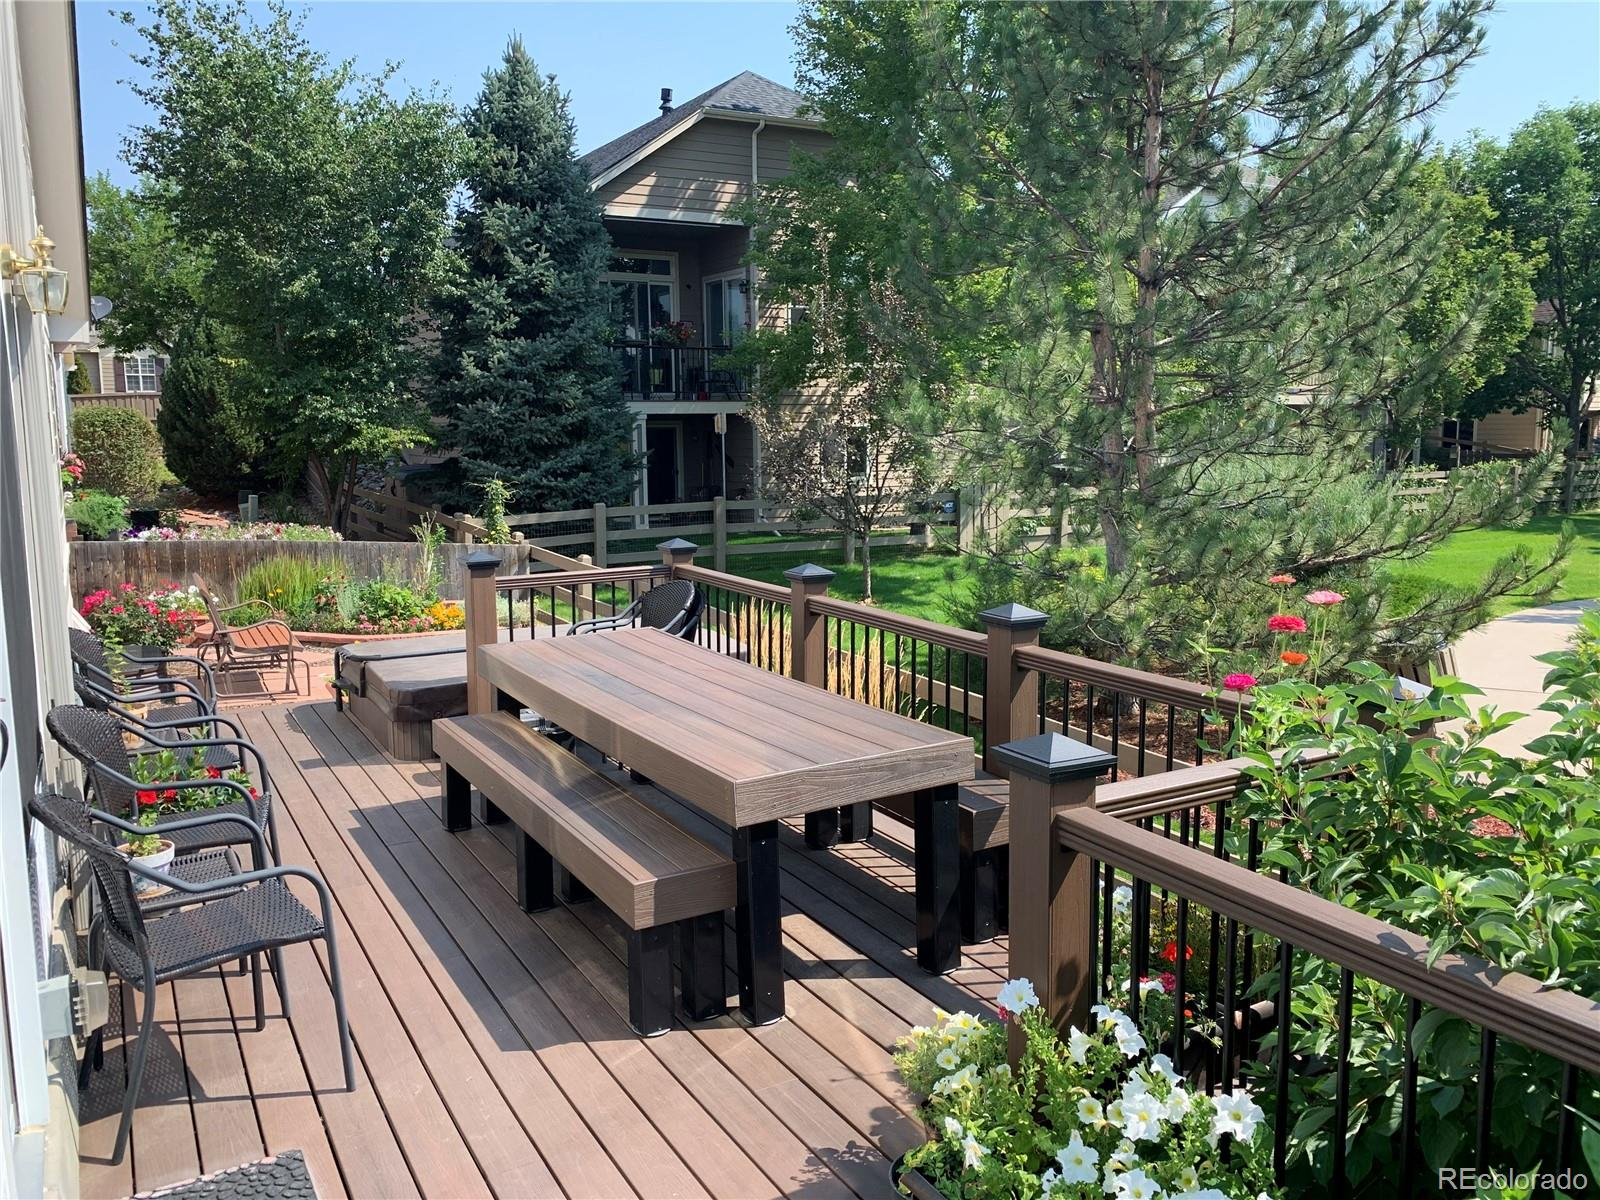 Composite Deck with Matching Picnic Table